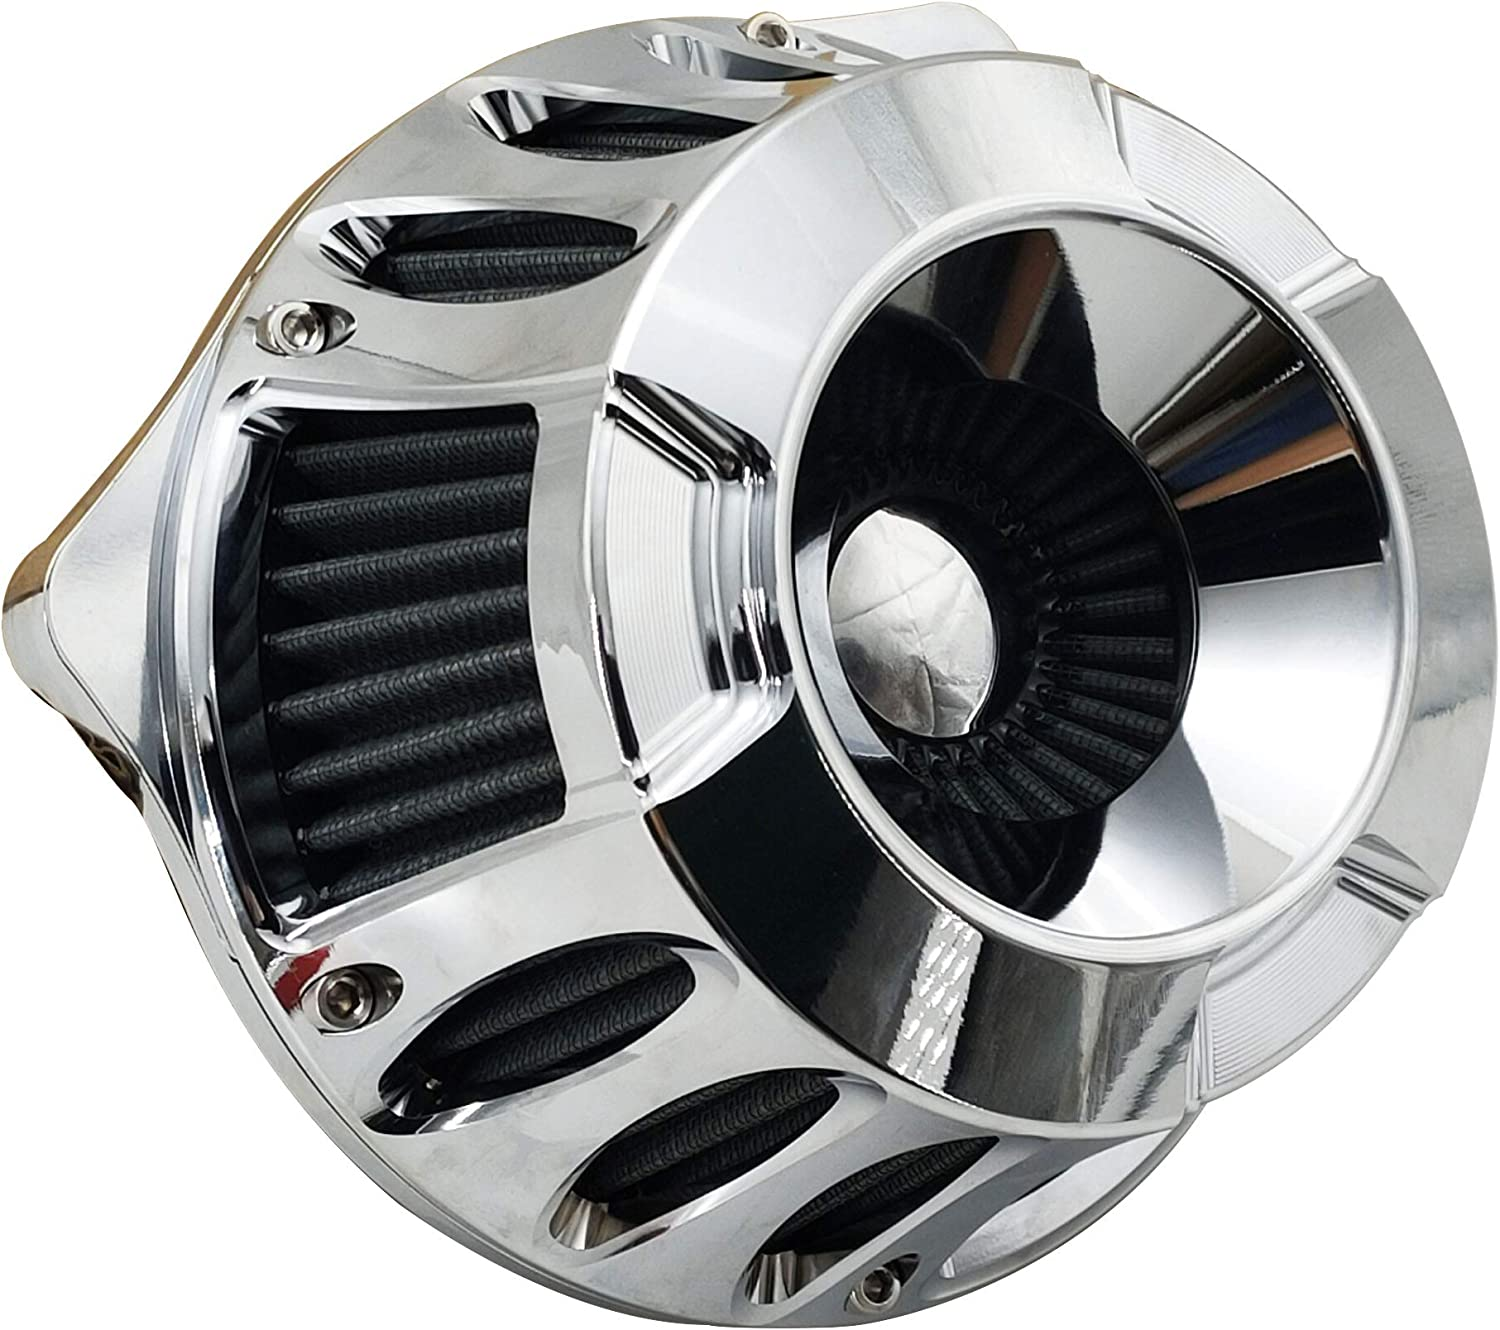 Harley Air Cleaner Motorcycle Filter Max overseas 76% OFF Intake f CNC Chrome Kit Cut